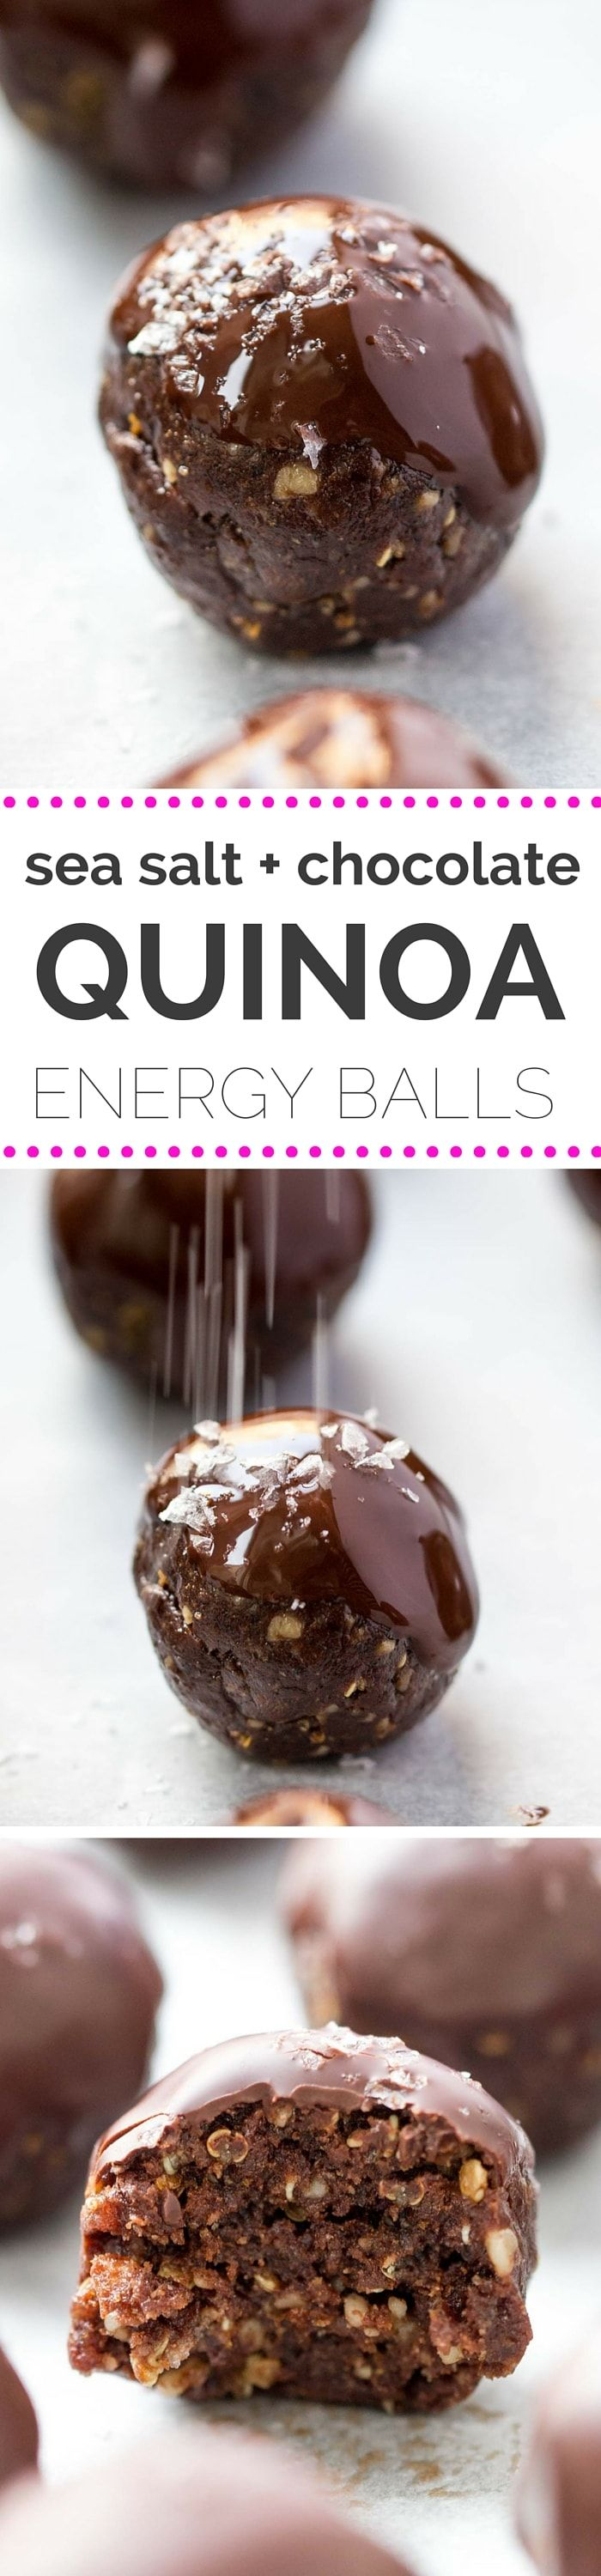 The BEST DAMN energy balls ever! They're double dark chocolate and sea salt with crispy quinoa -- taste like brownies, but are packed with healthy ingredients! [vegan]